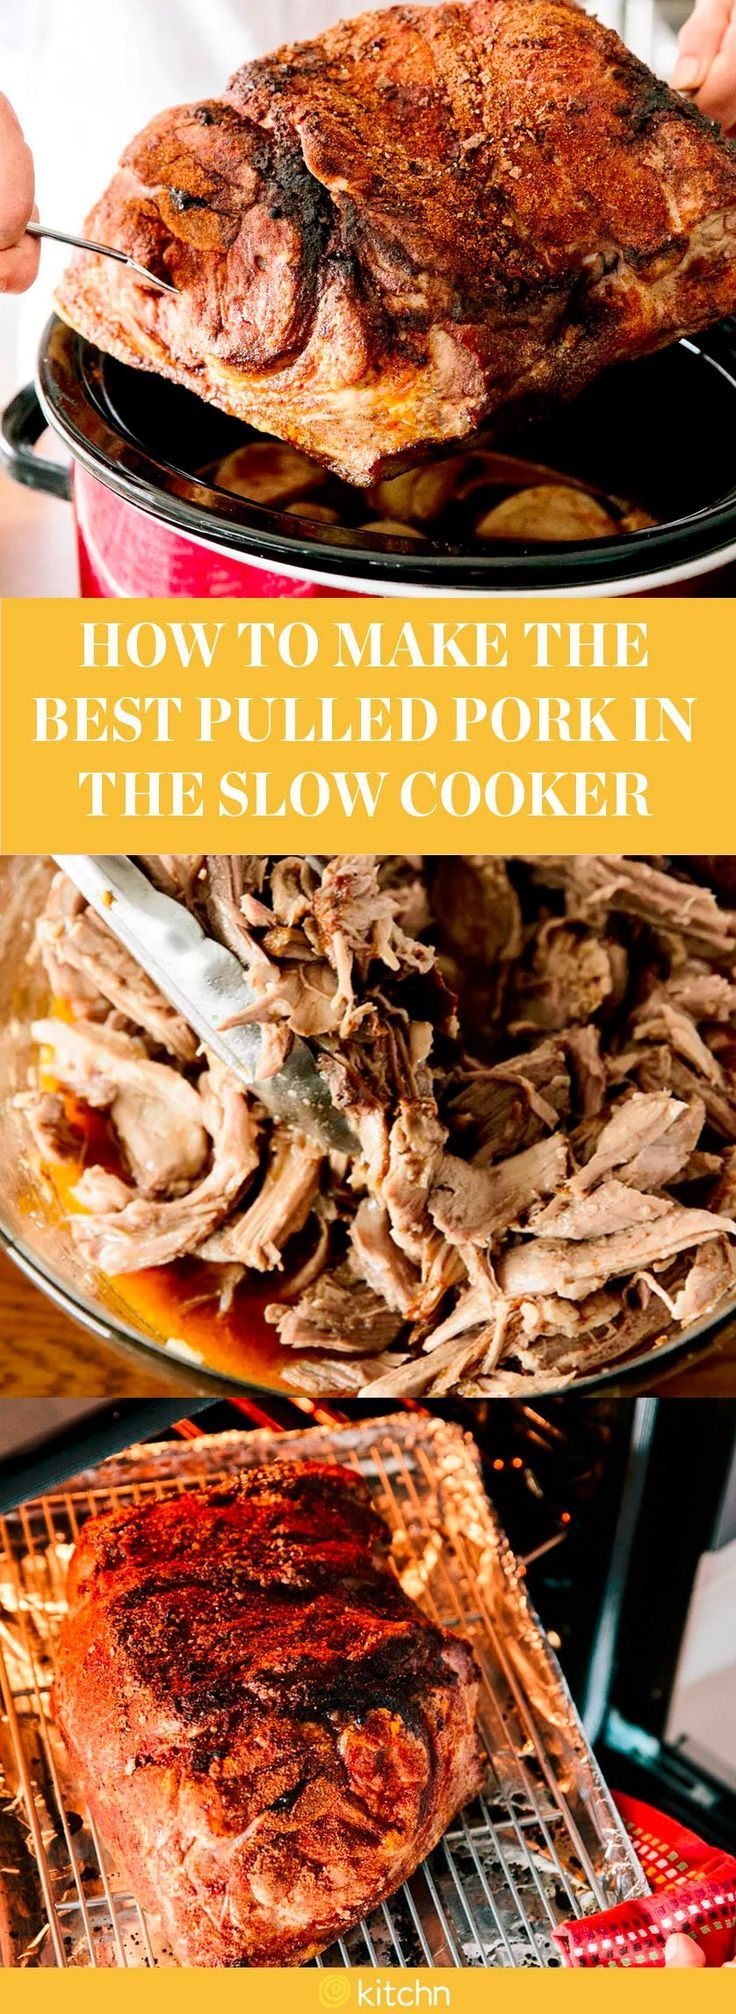 EASY slow cooker pulled pork. This is one of the simplest recipes you'll ever make in your crock pot and everyone will LOVE it! Use a cheap pork shoulder/butt and feed a large crowd. Also a great recipe for meal prep - leftovers freeze very well and make excellent bbq pork sandwiches.